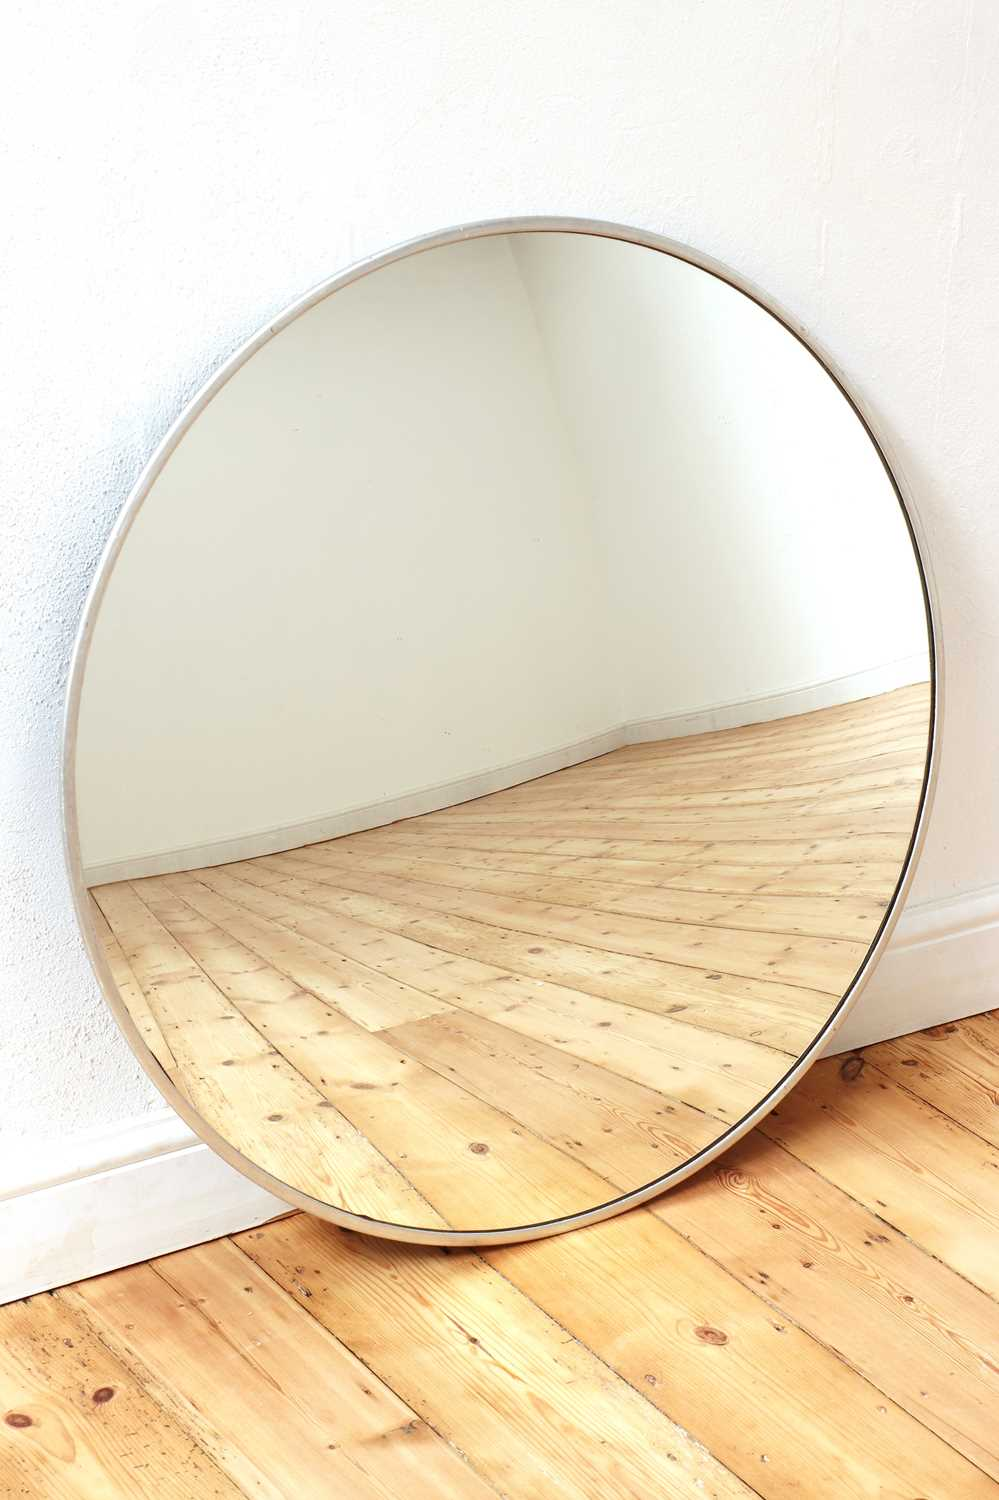 A convex wall mirror, - Image 2 of 3